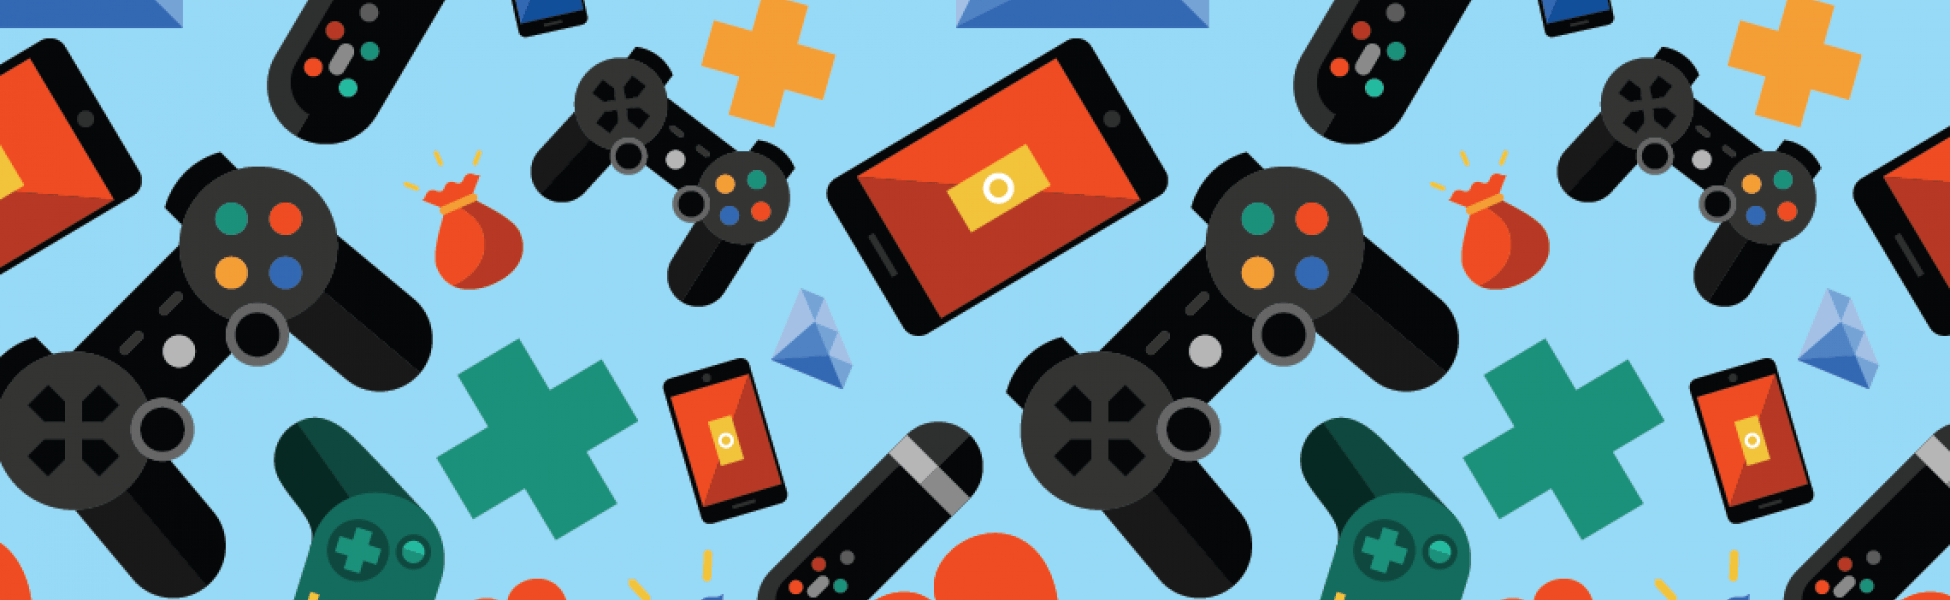 Top 10 Best Offline Games For Android 2018